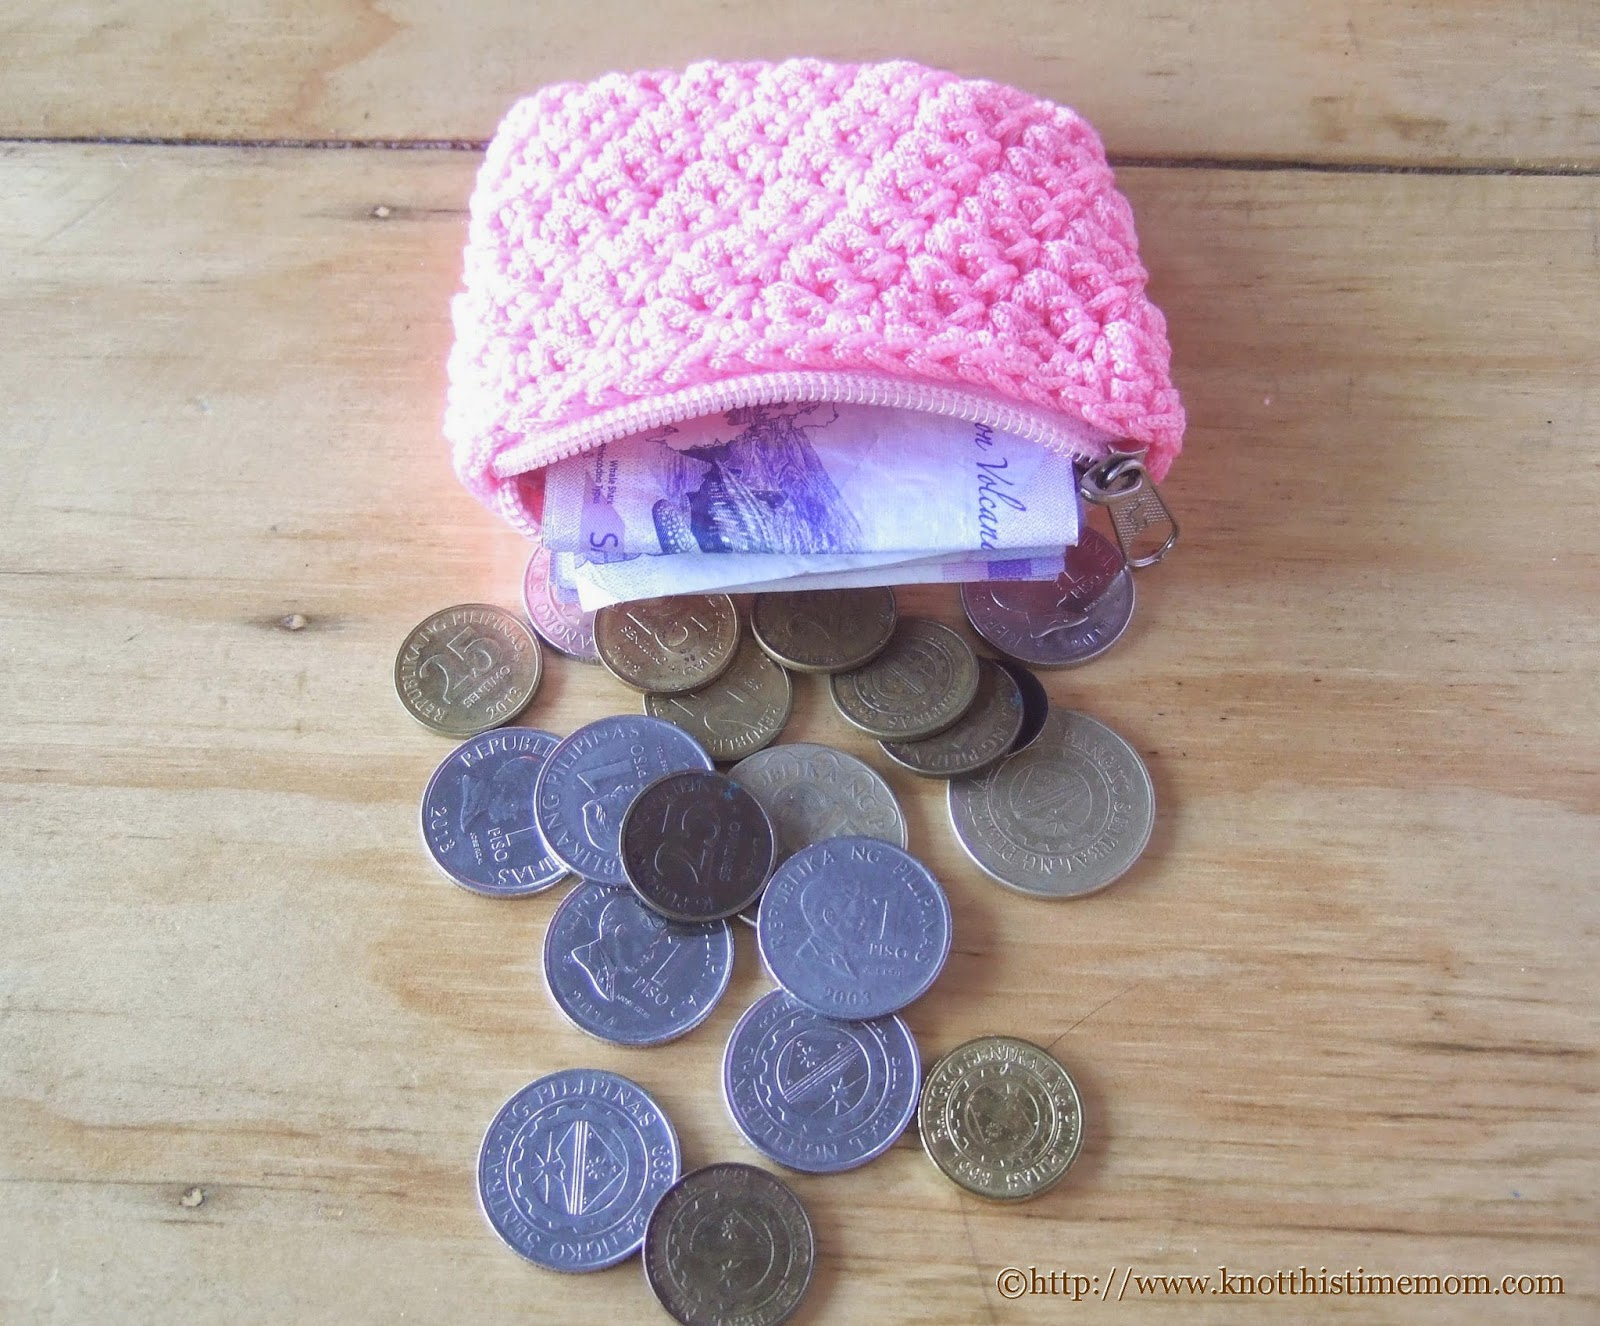 crochet coin purse with bills and coins